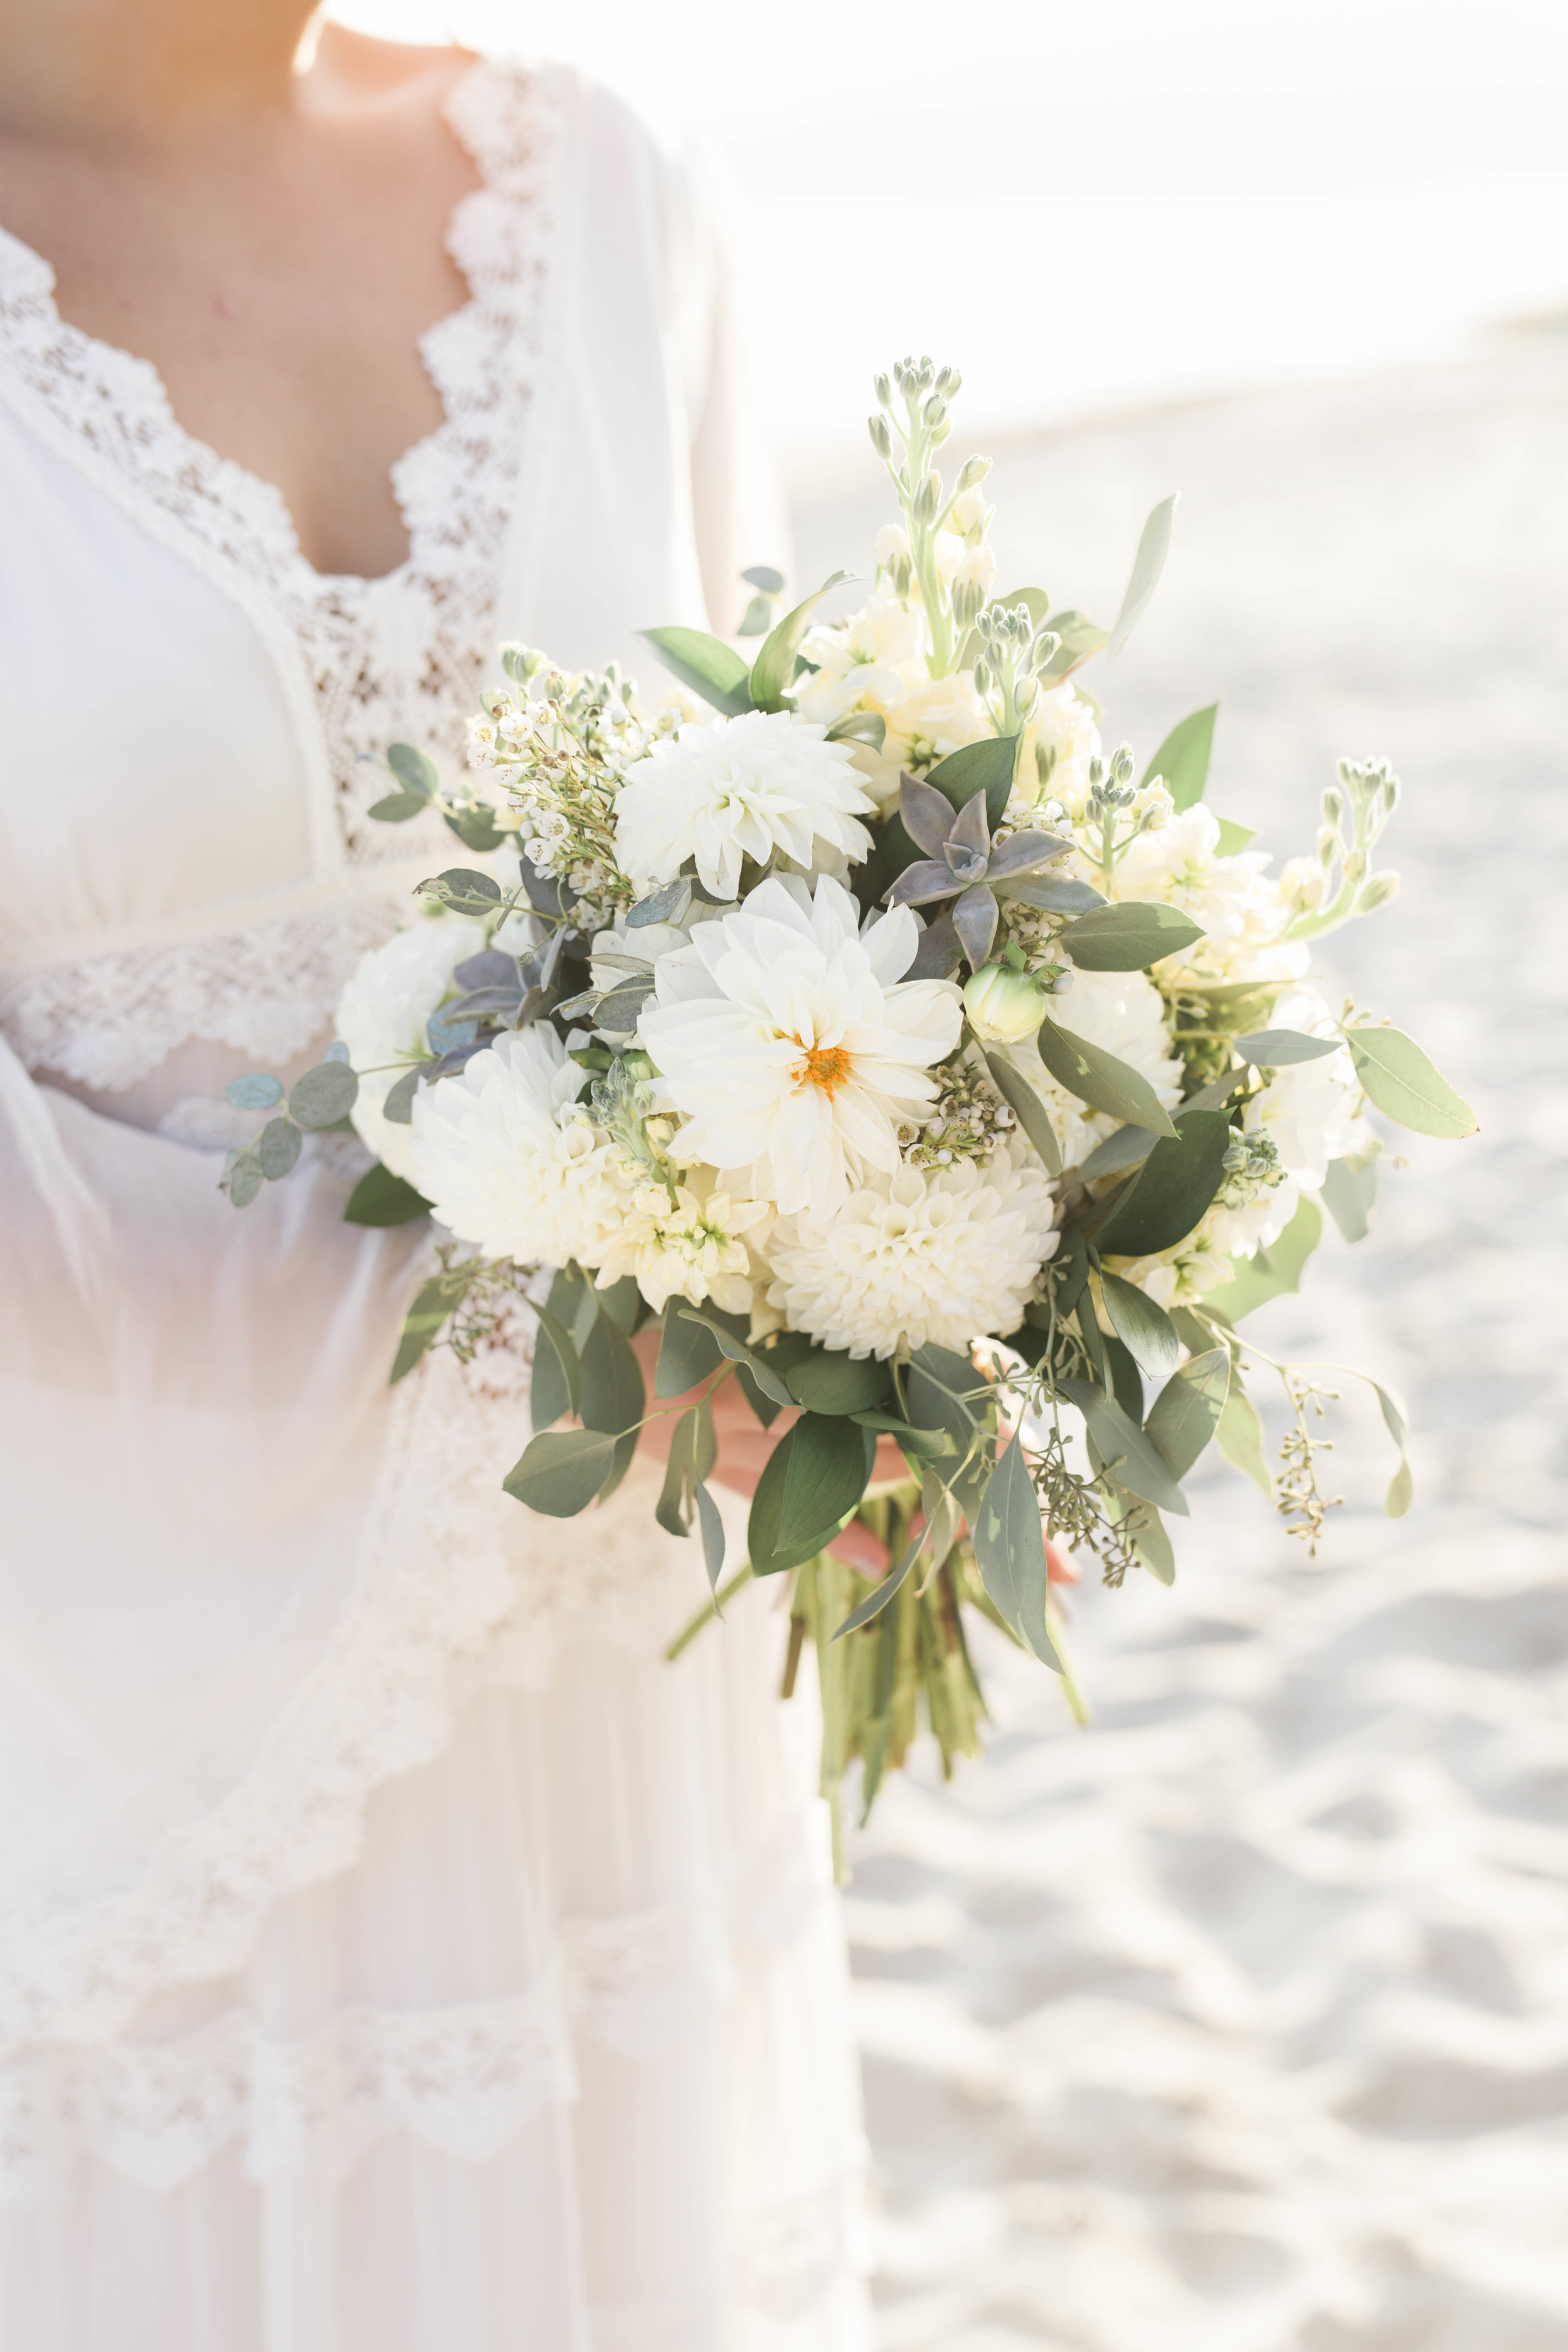 Stunning bouquet by Calabash Florist & Company!